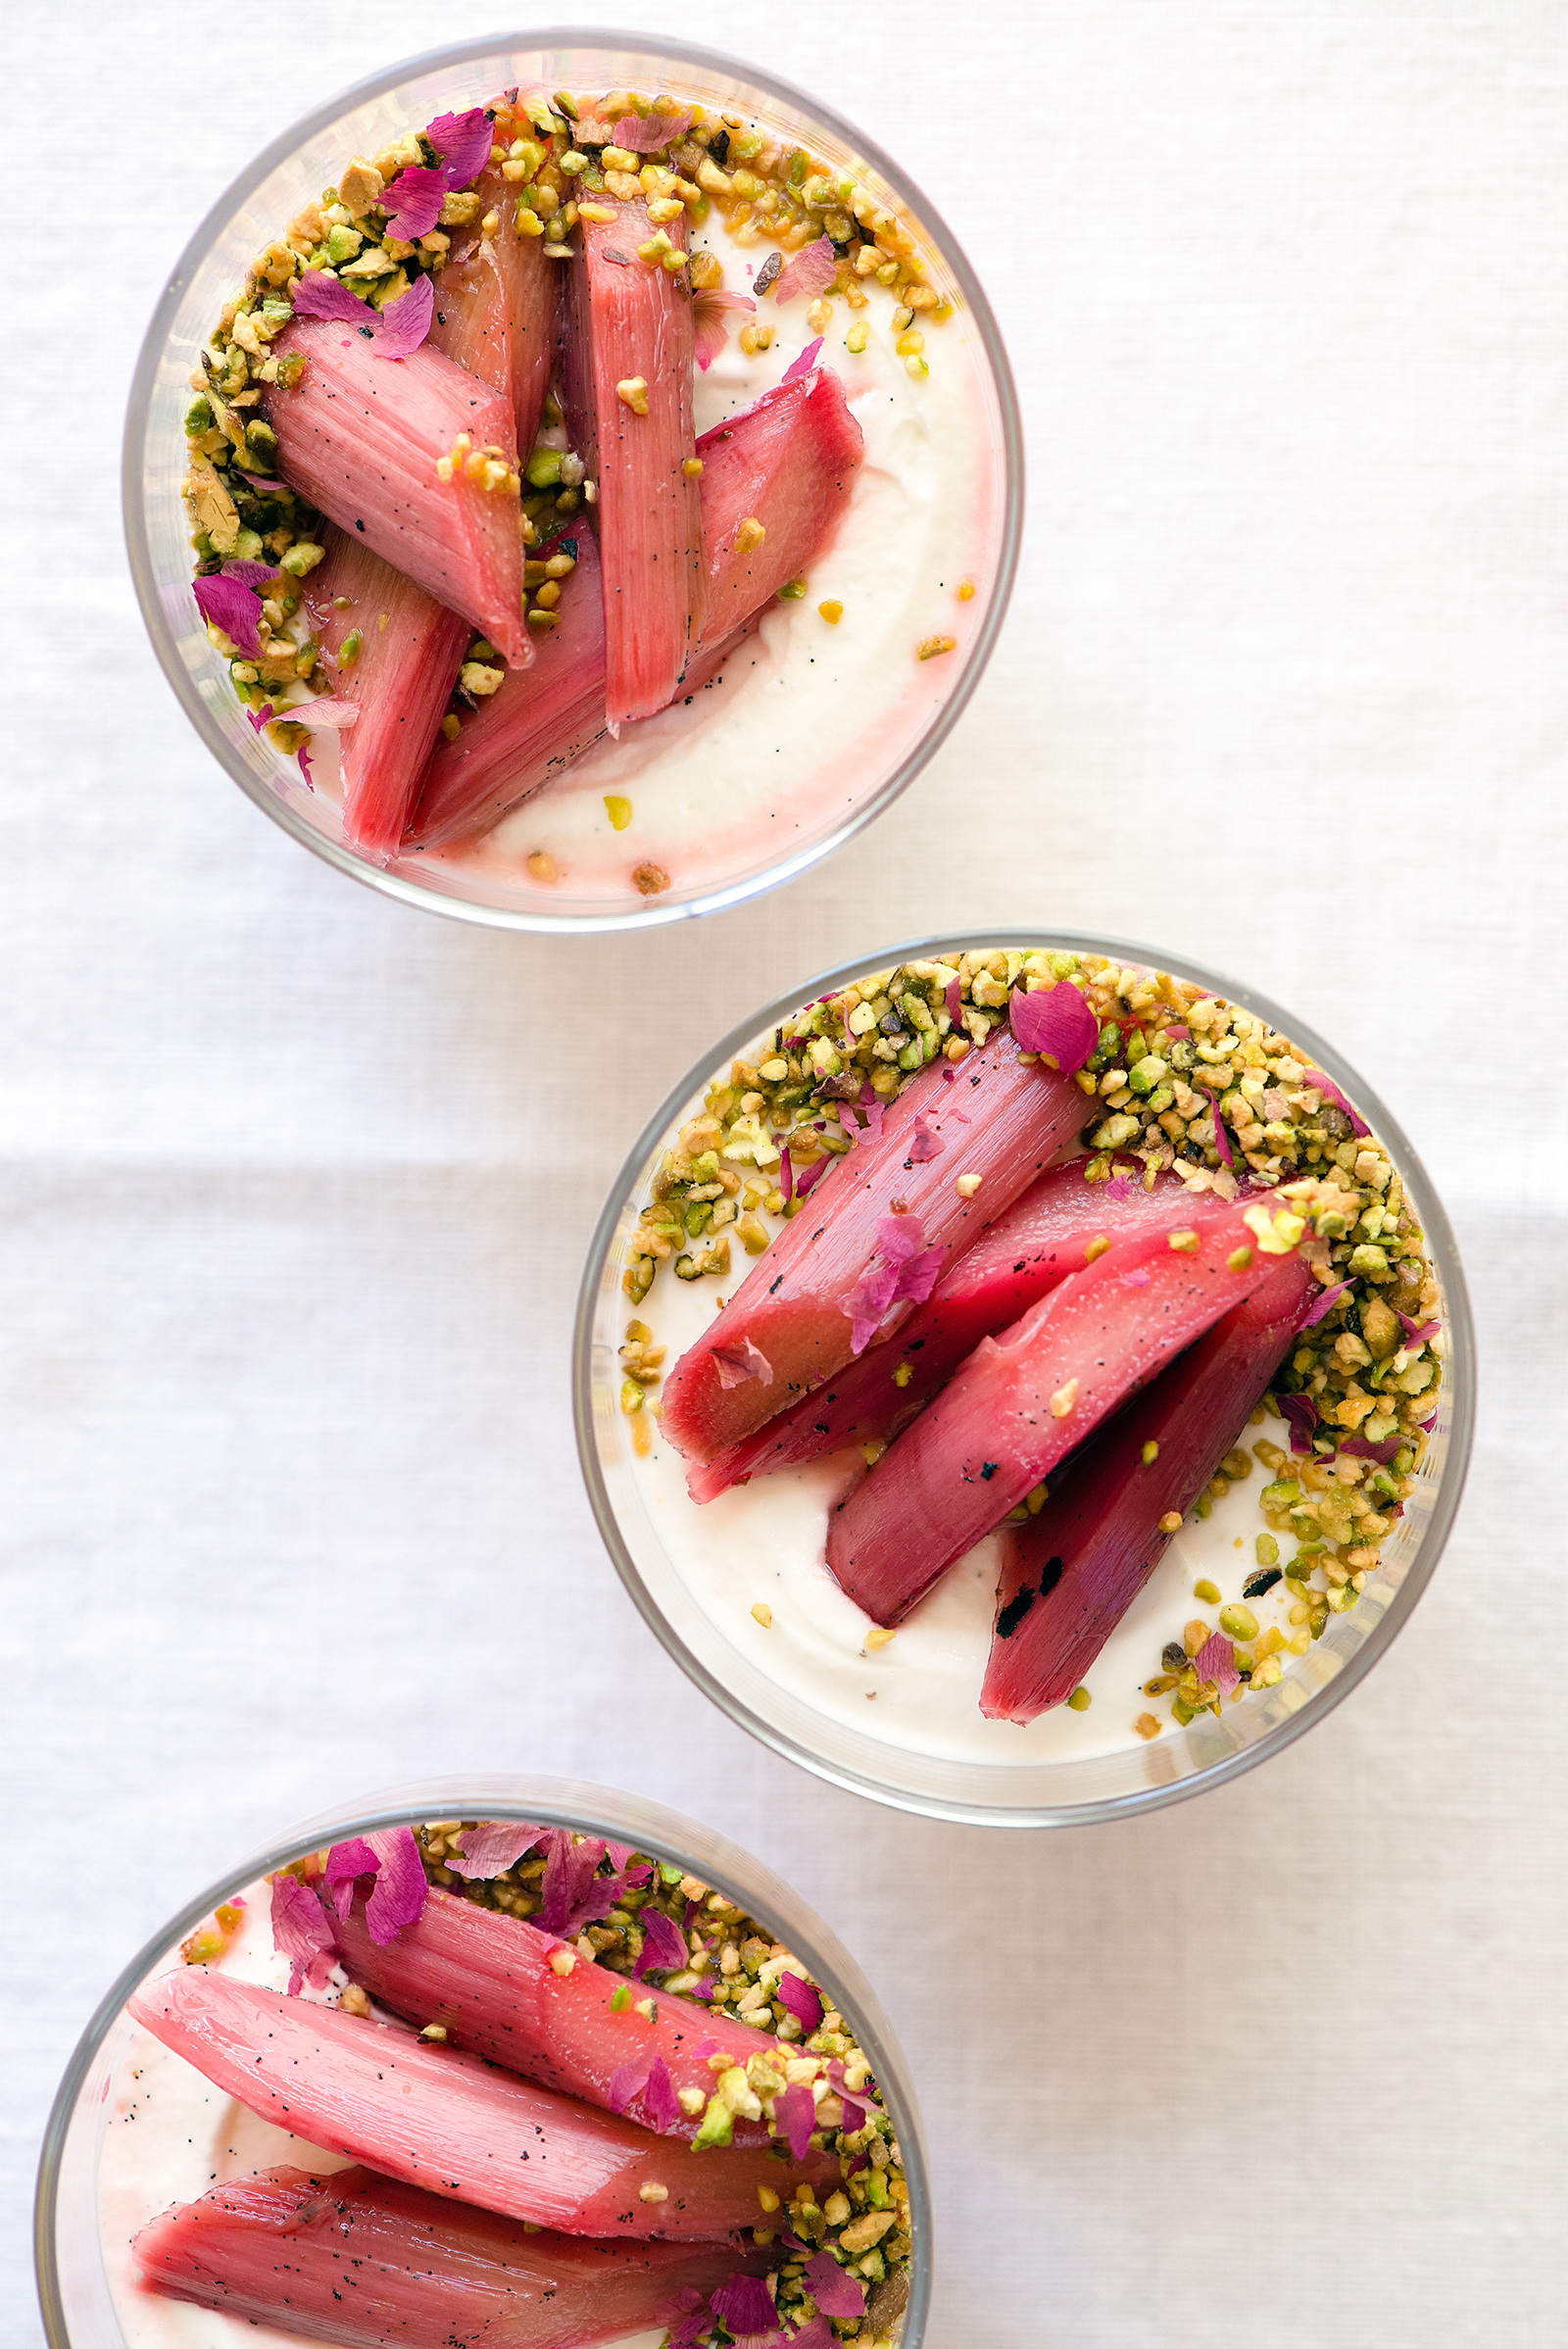 Labneh Mousse with Orange Blossom Rhubarb